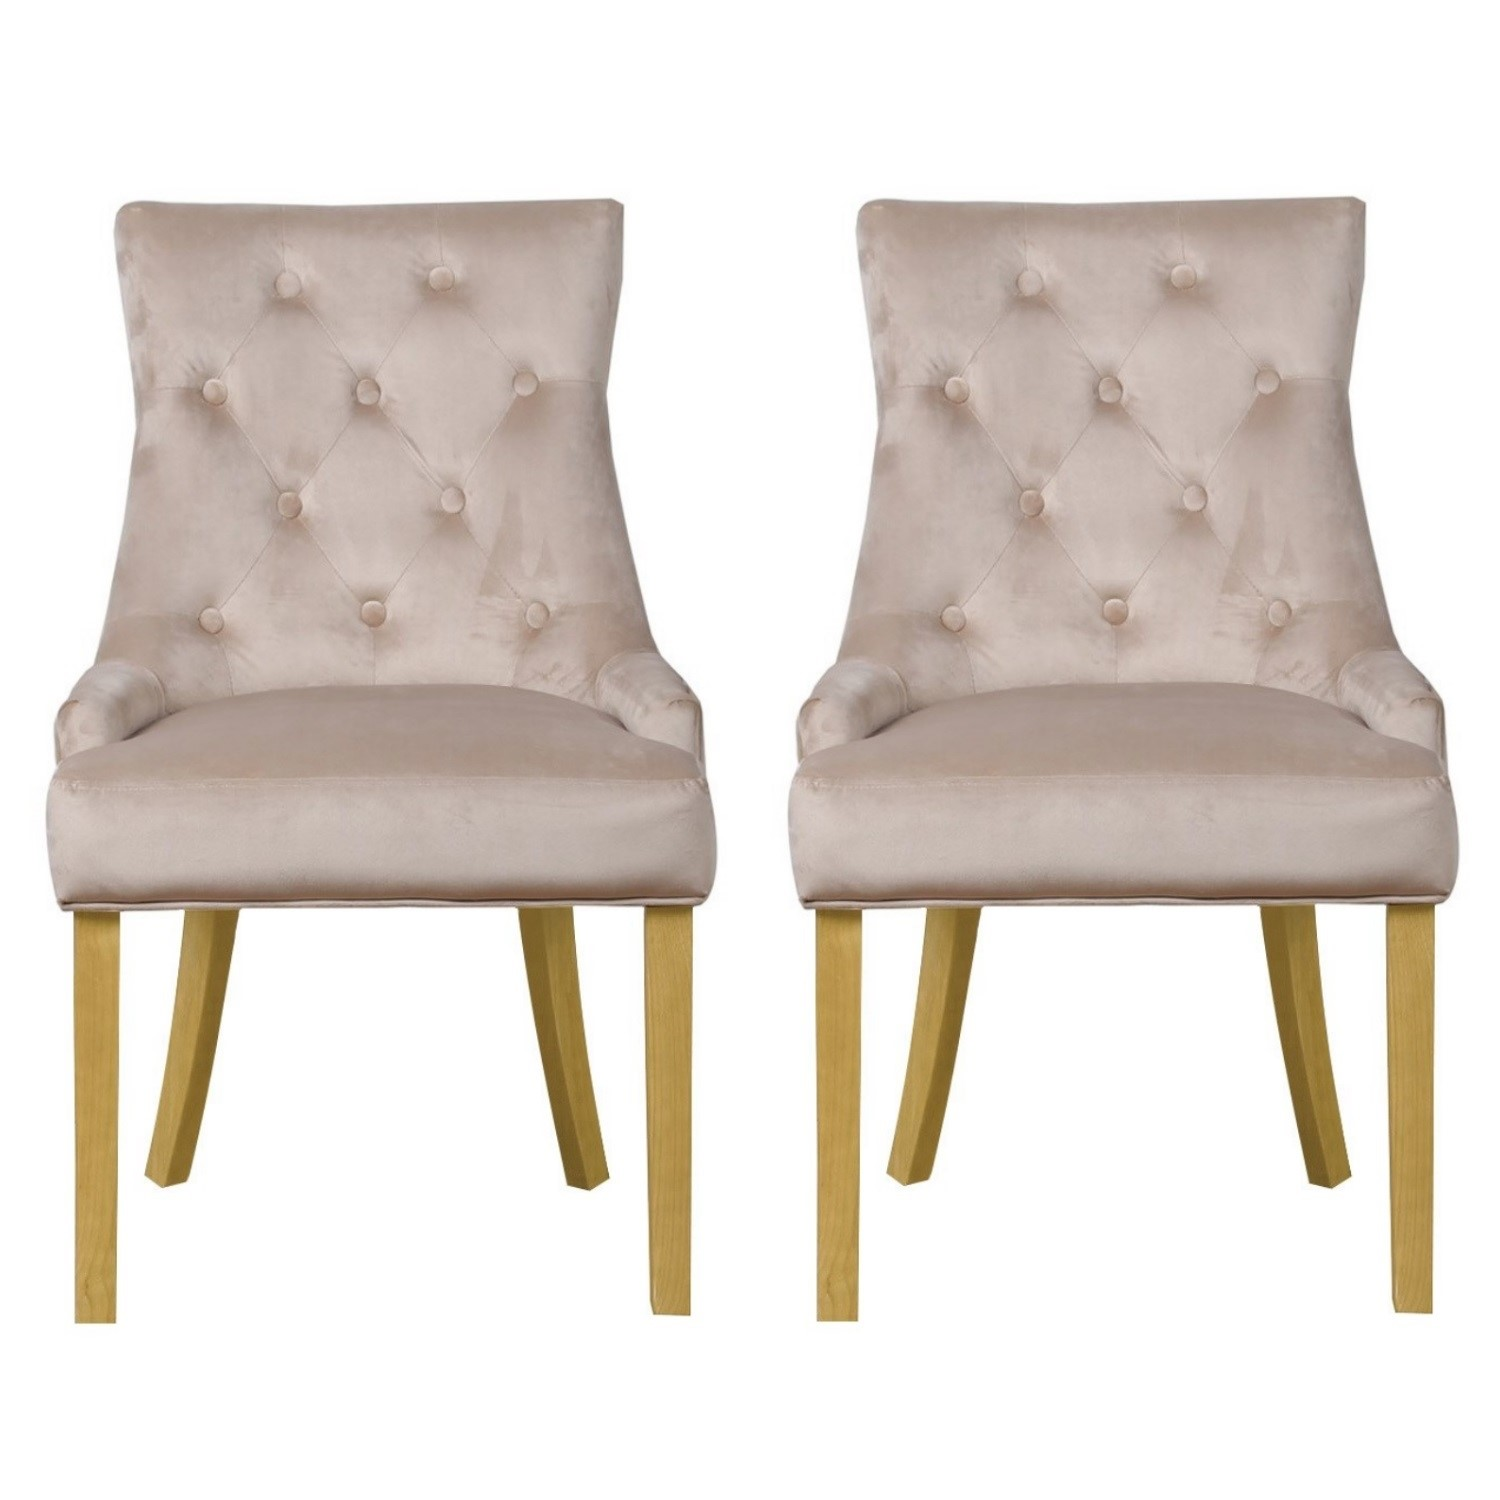 Latest Dining Chairs: New Modern Luxury Premium Pair Of Velvet Dining Chairs